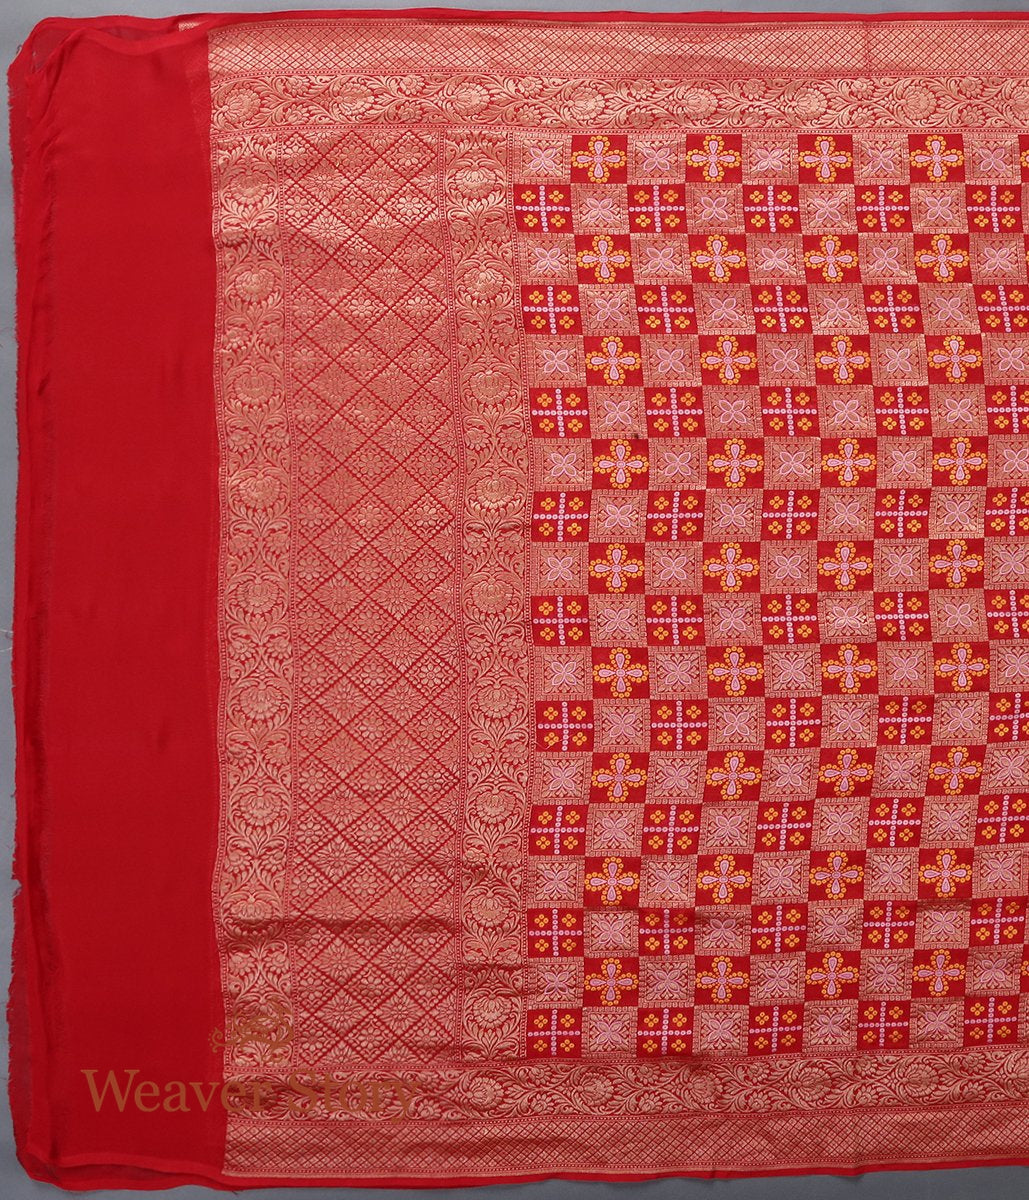 Handwoven Red Banarasi Georgette Dupatta with Bandhej